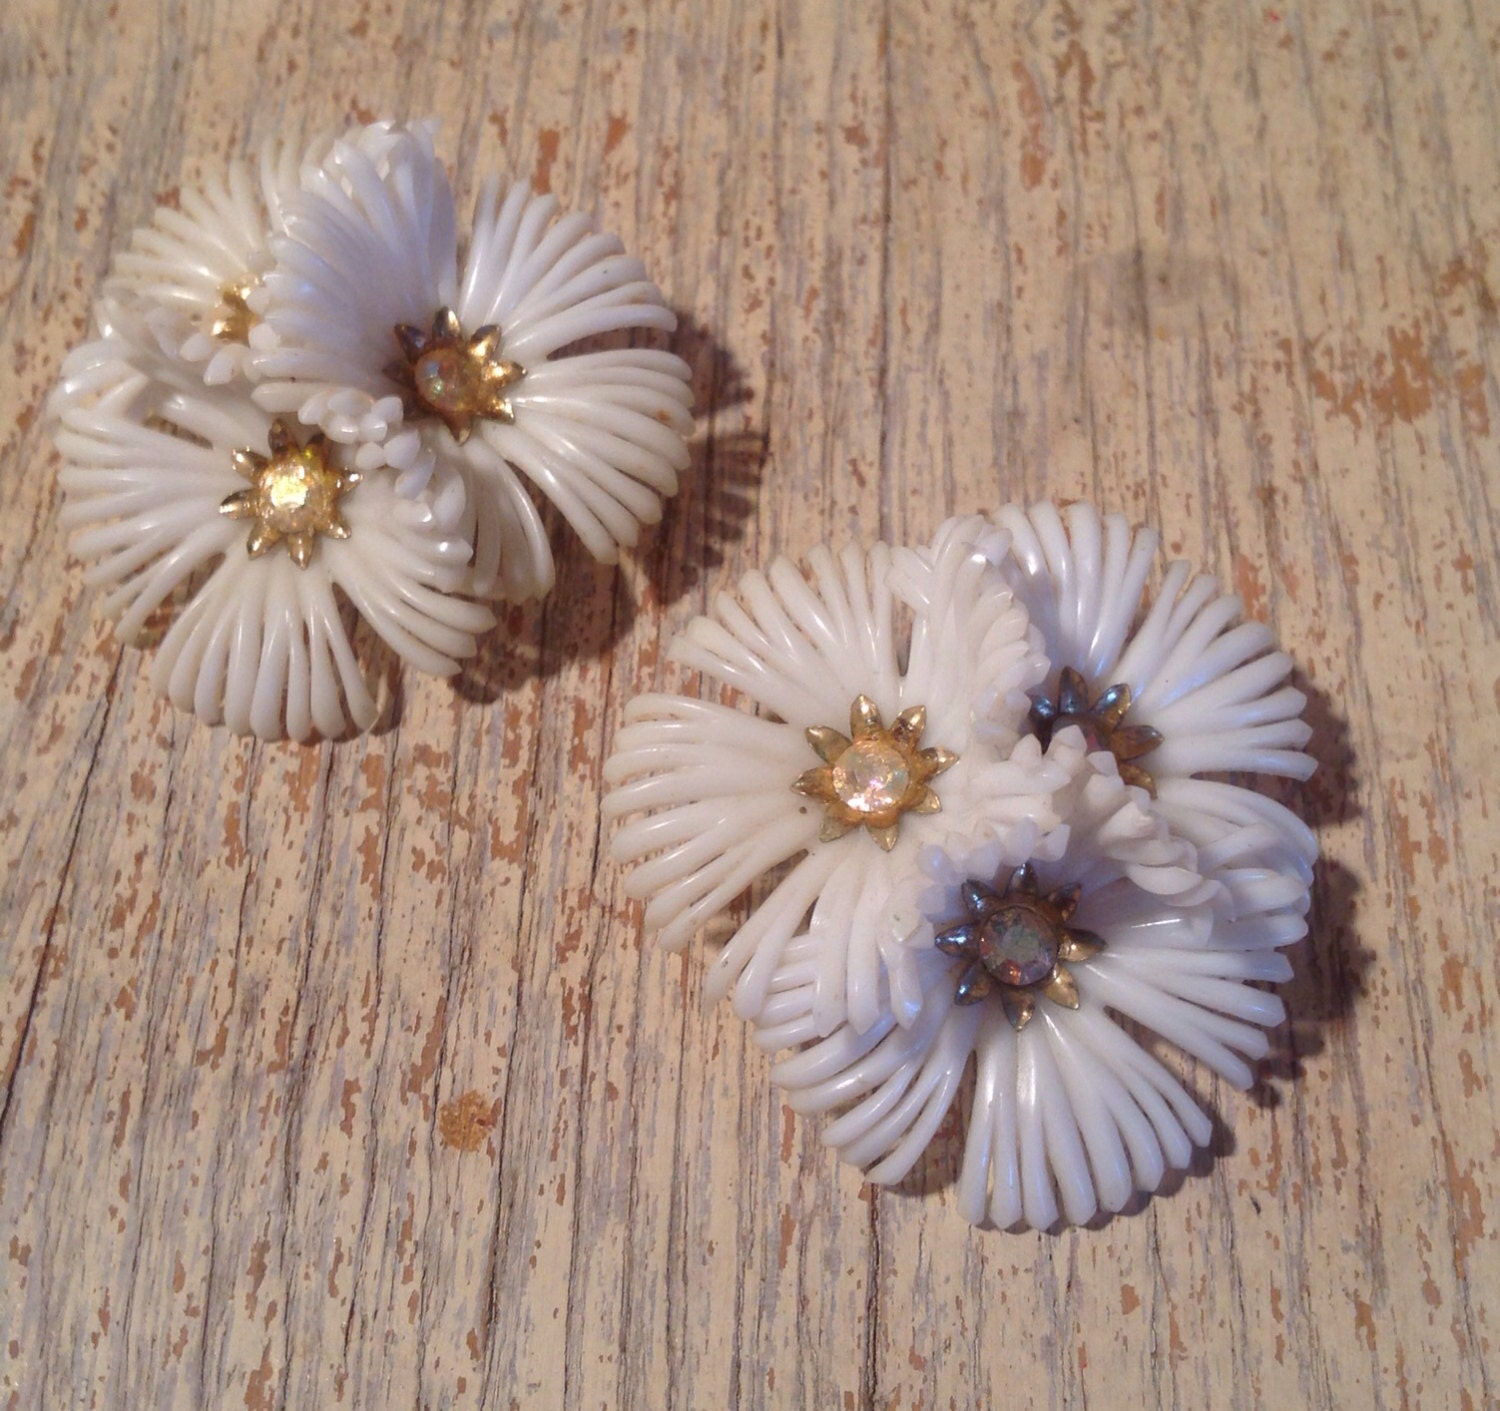 Vintage Coro Rhinestone White Flower Clip Earrings - Vintage Bridal - Mid Century Fashion - PackandAlleys